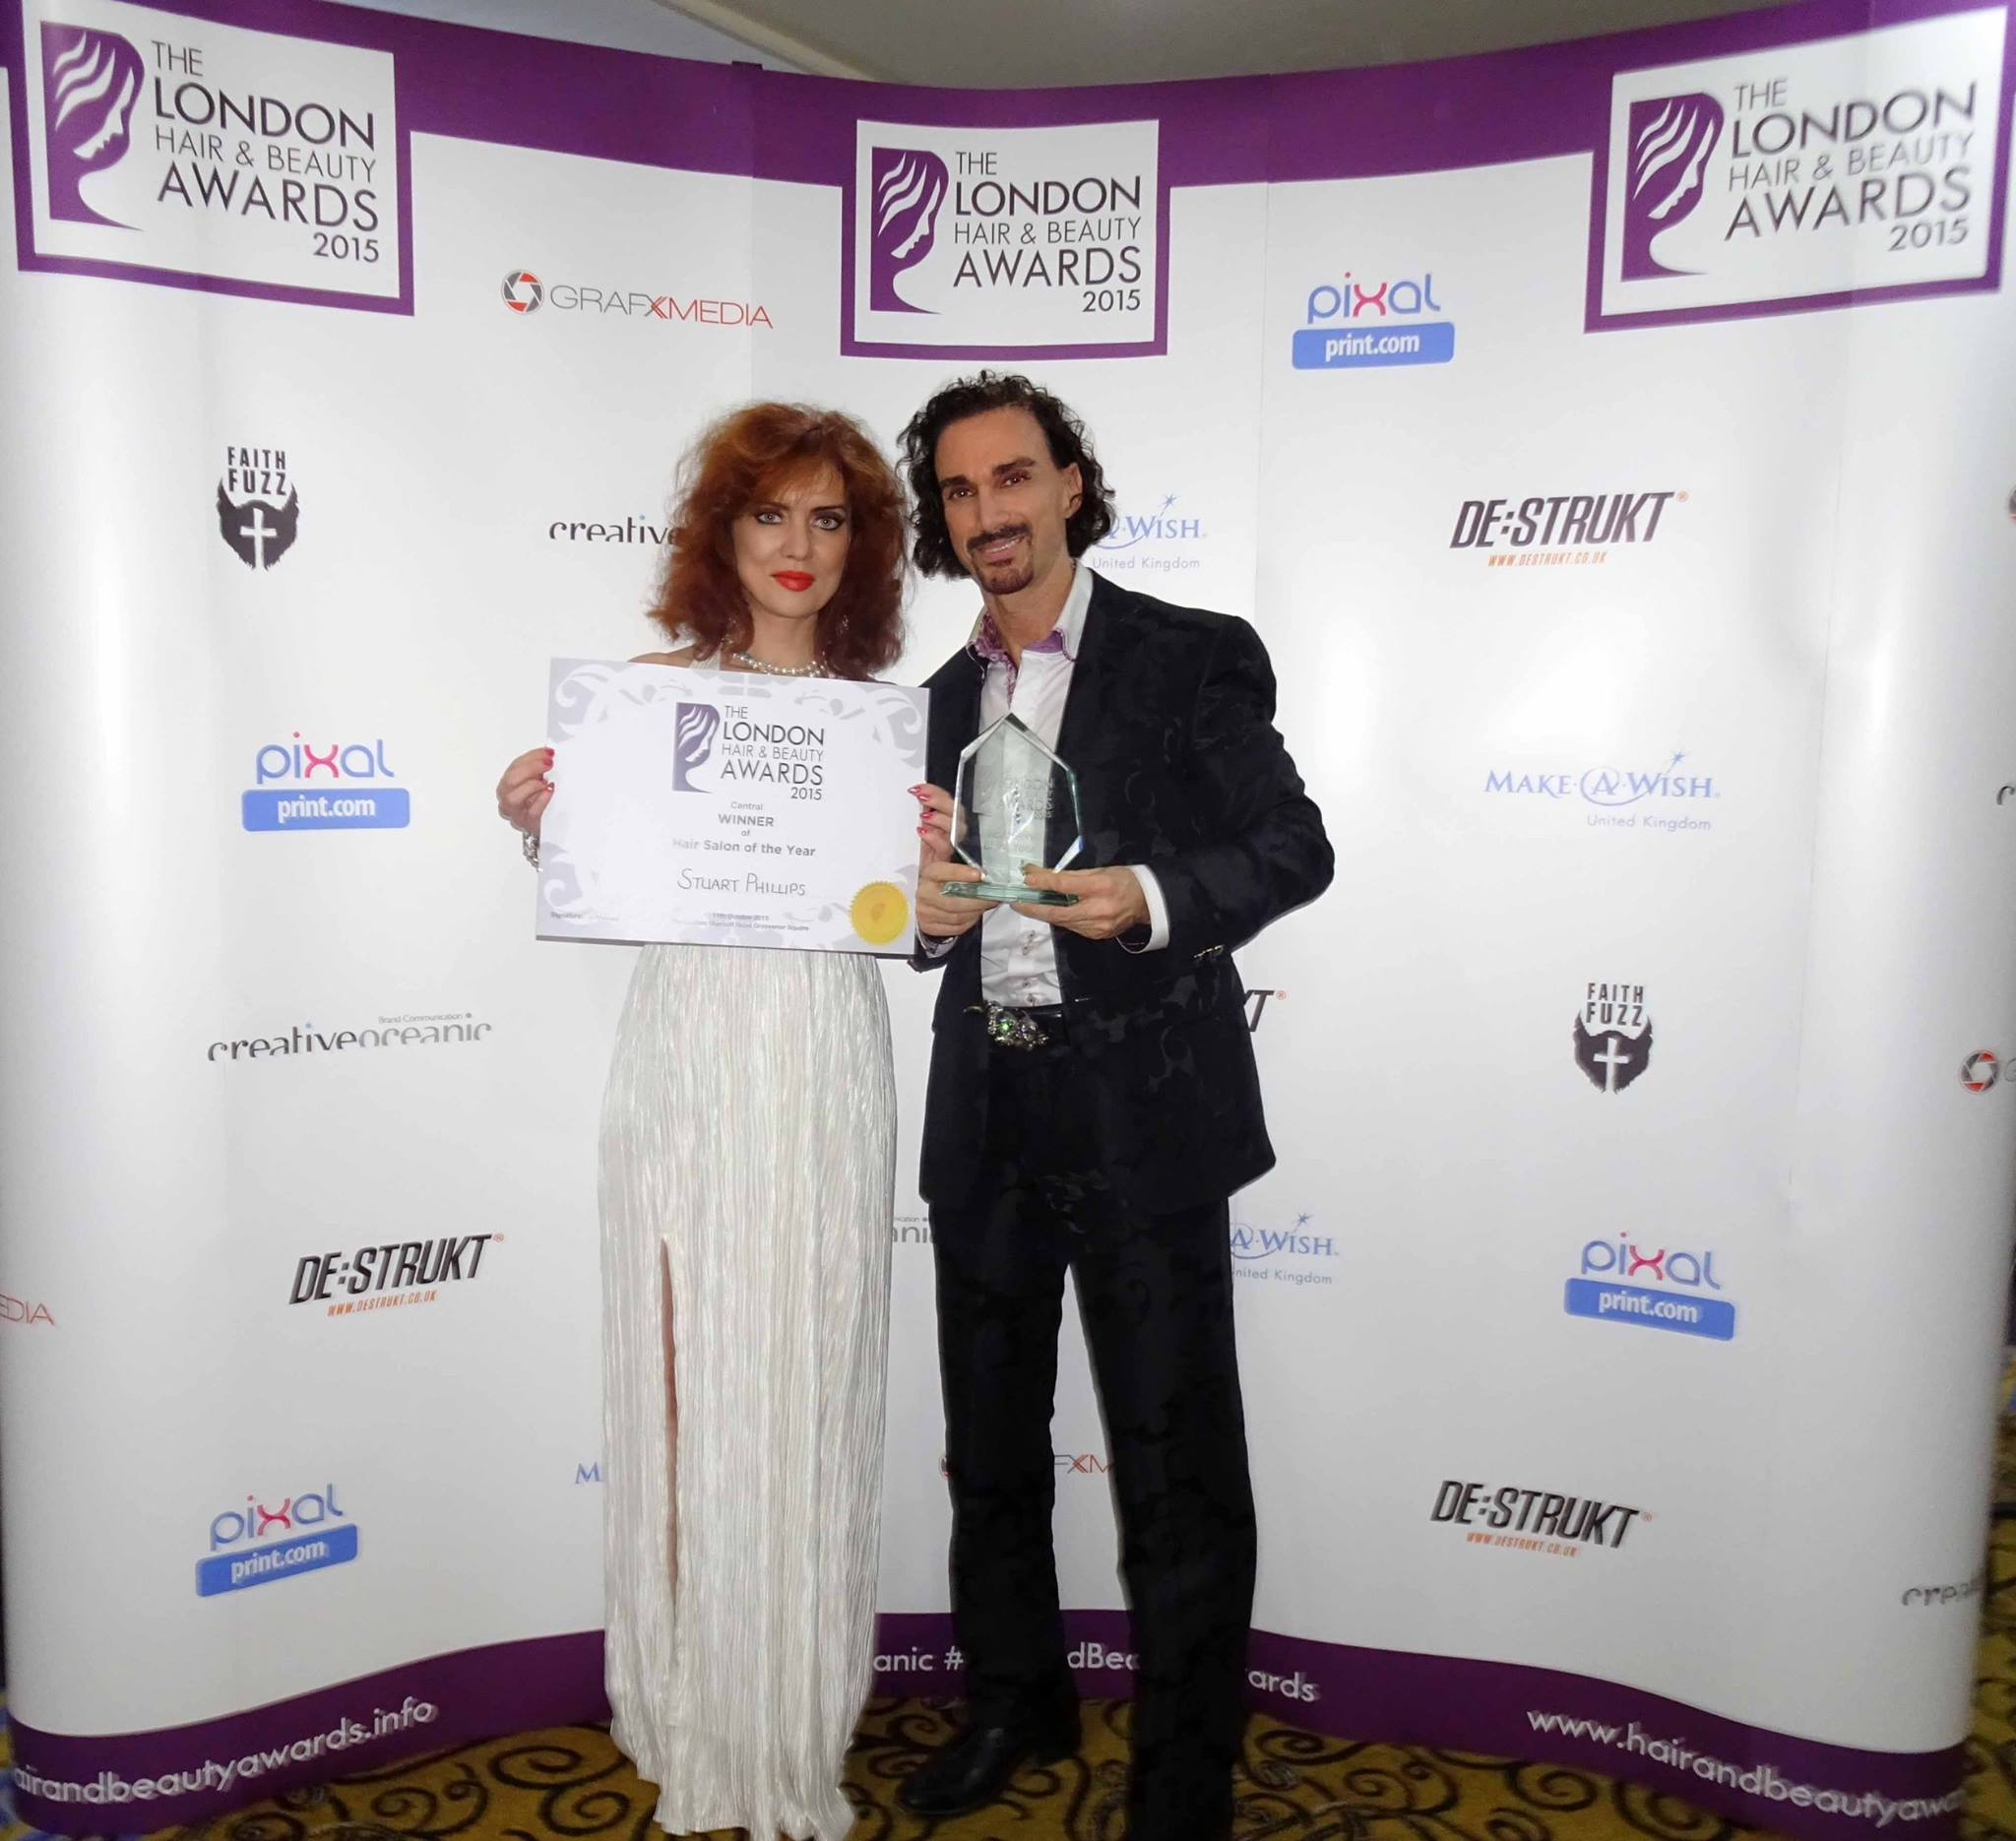 Won the award of best salon in London 2015 (1)Angel and me holding up both the awards, a proud moment!